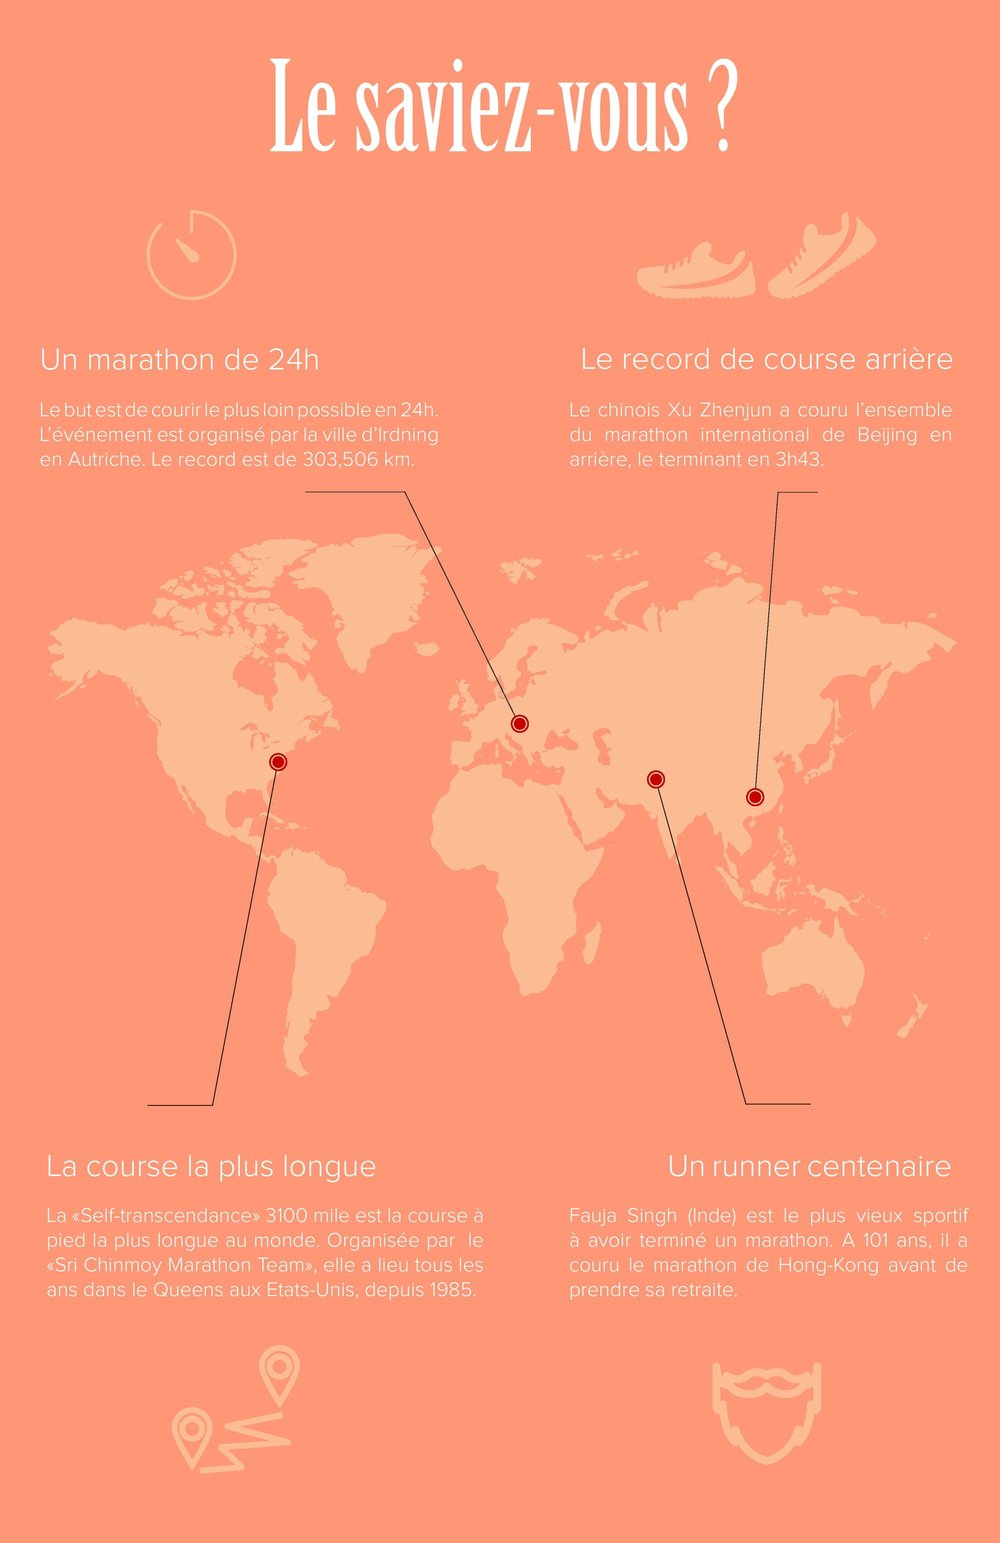 infographie-clinalliance-sport-courses-île-de-france partie 2.jpg